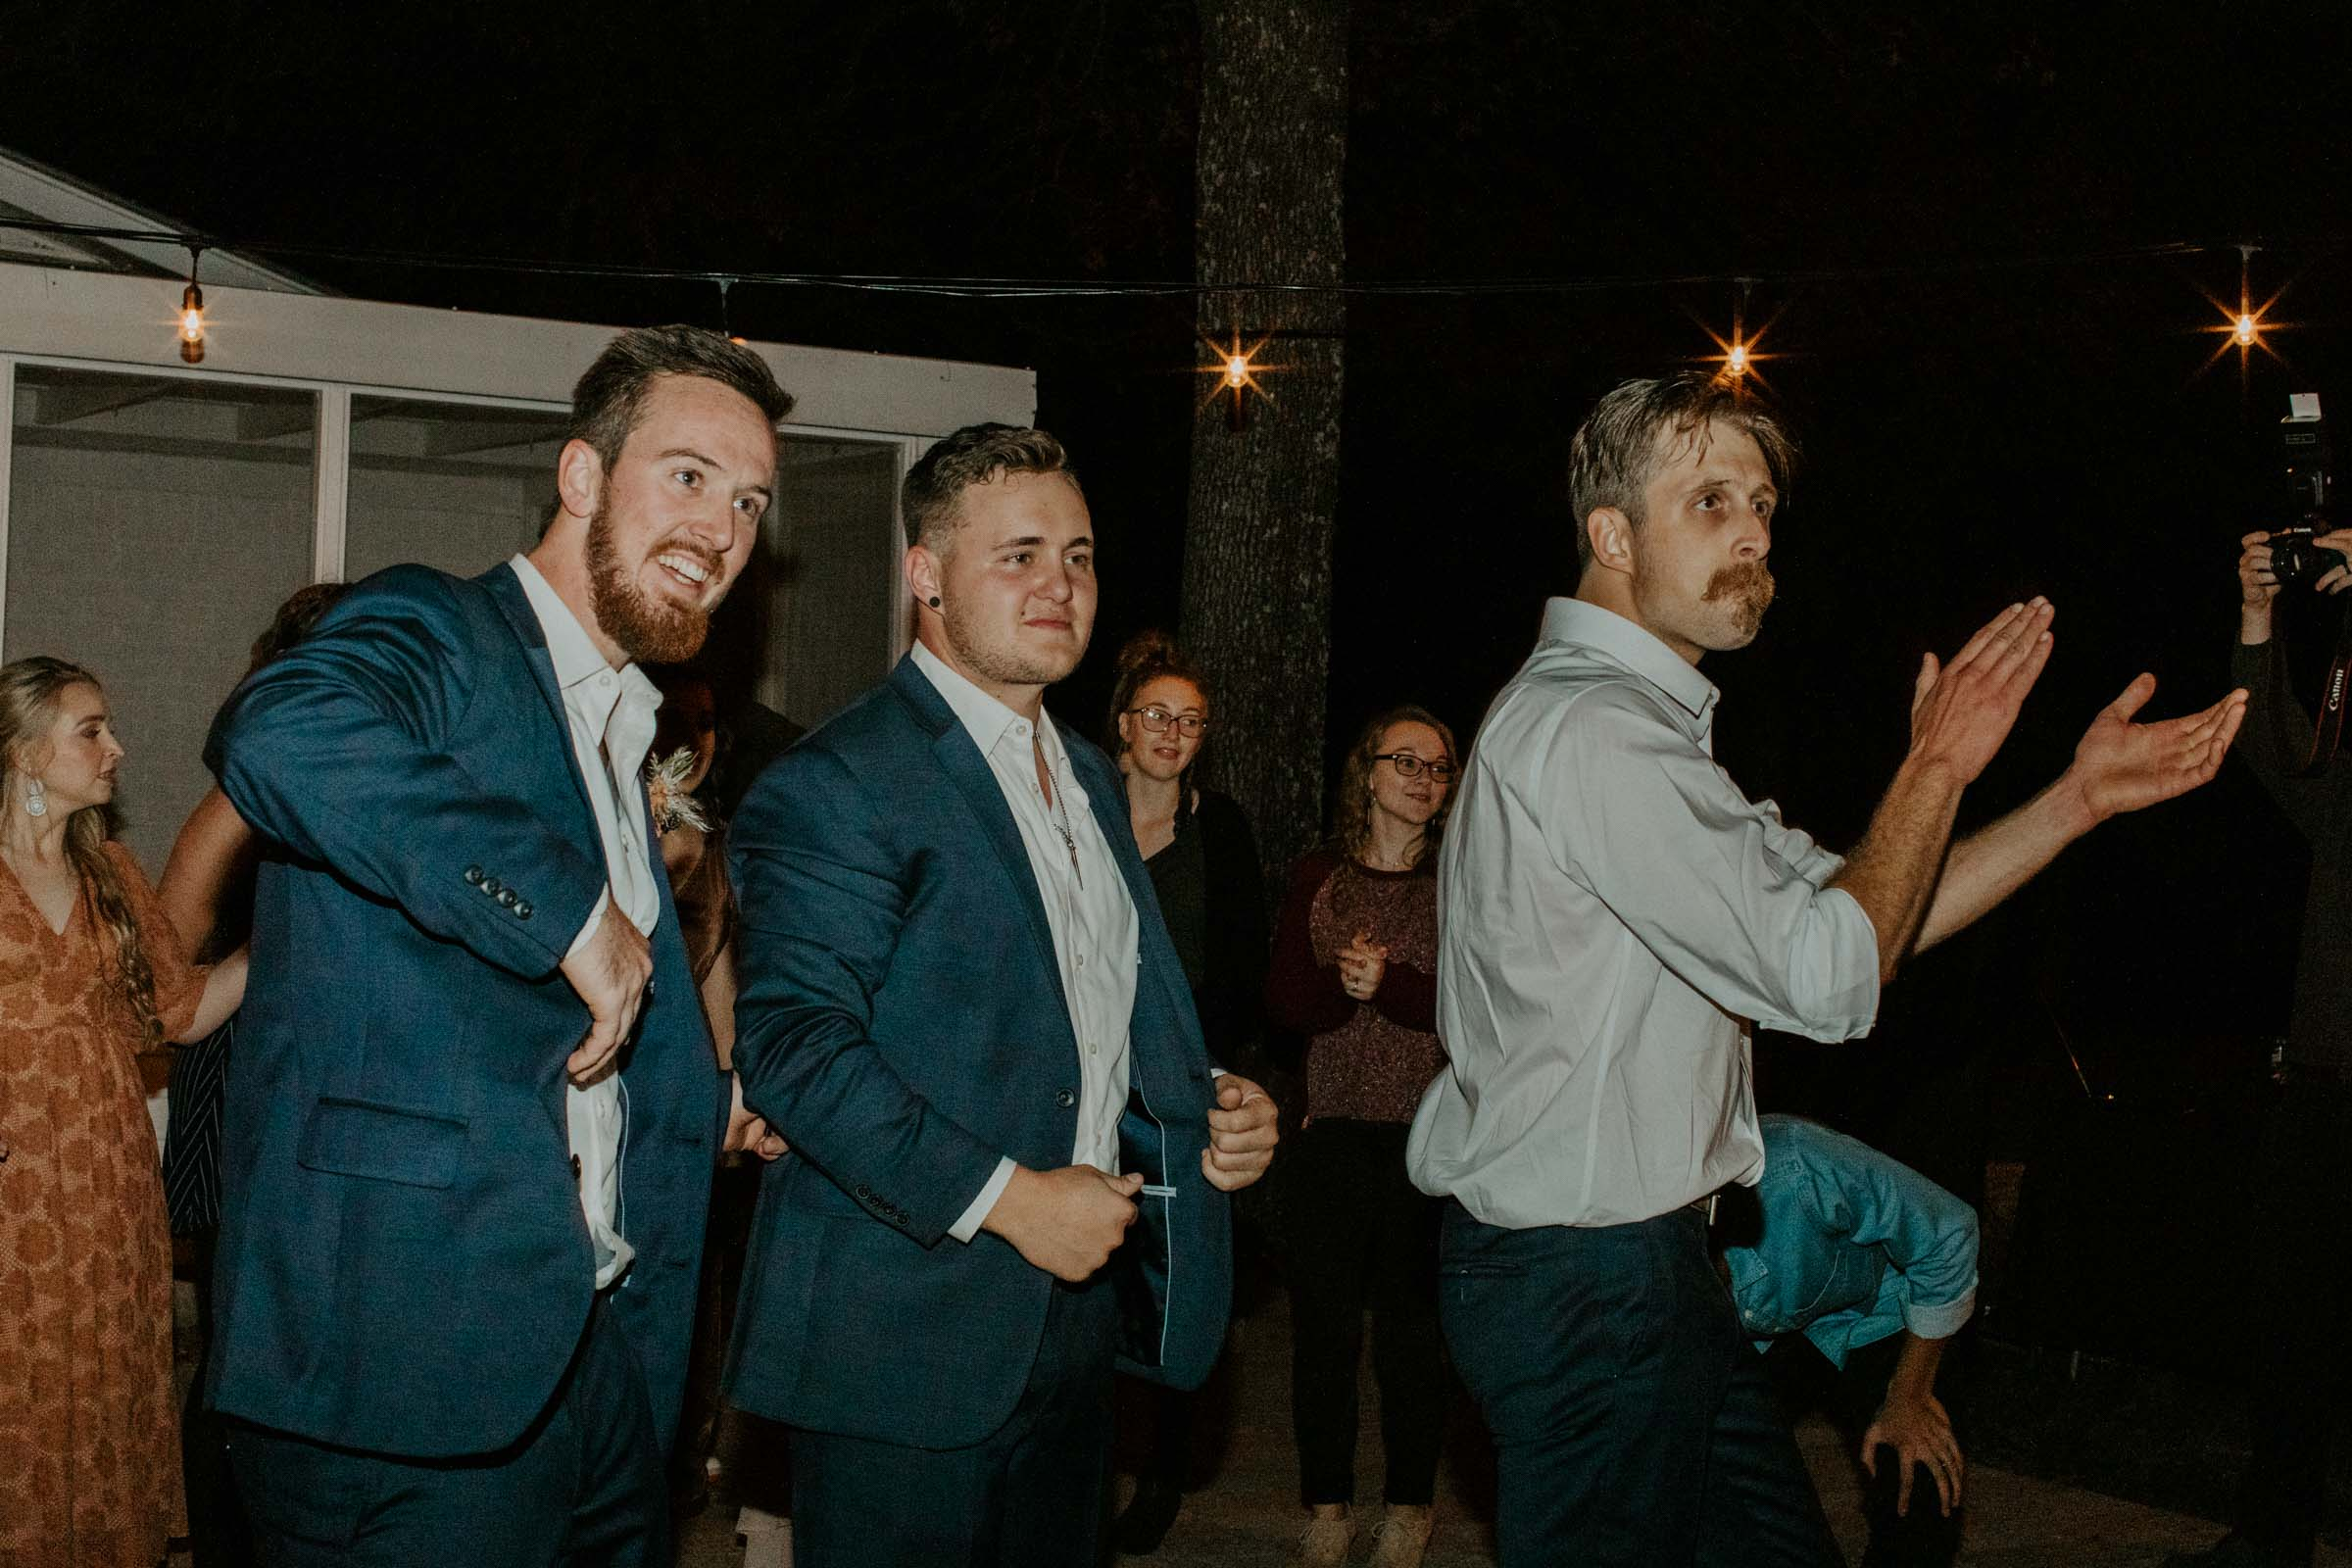 Groomsmen dancing on wedding day